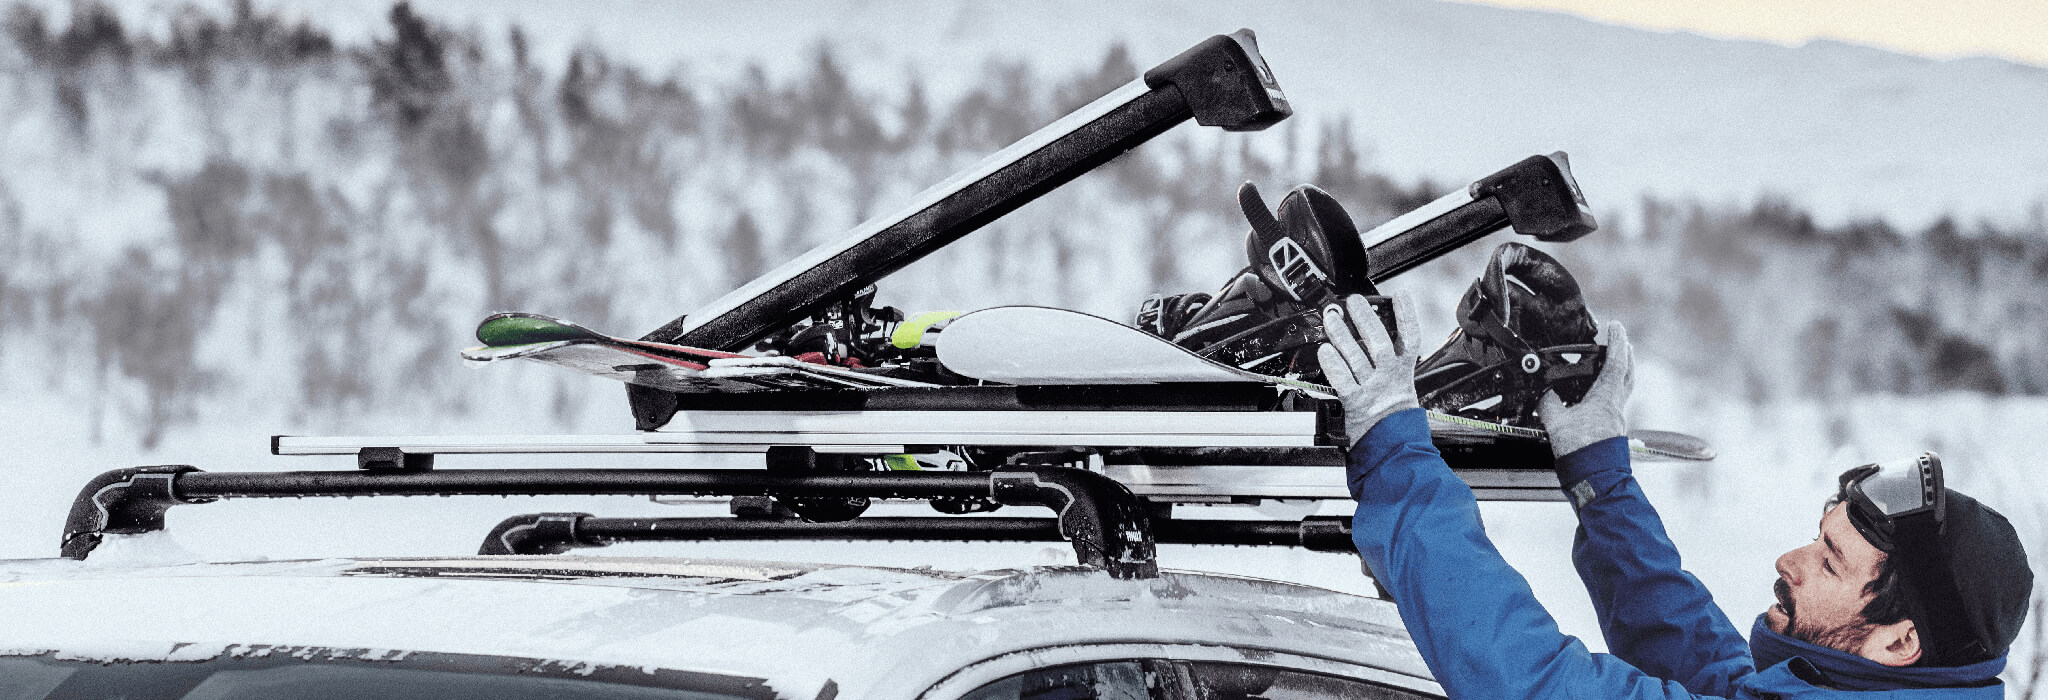 Ski and Snowboard Carrier in use